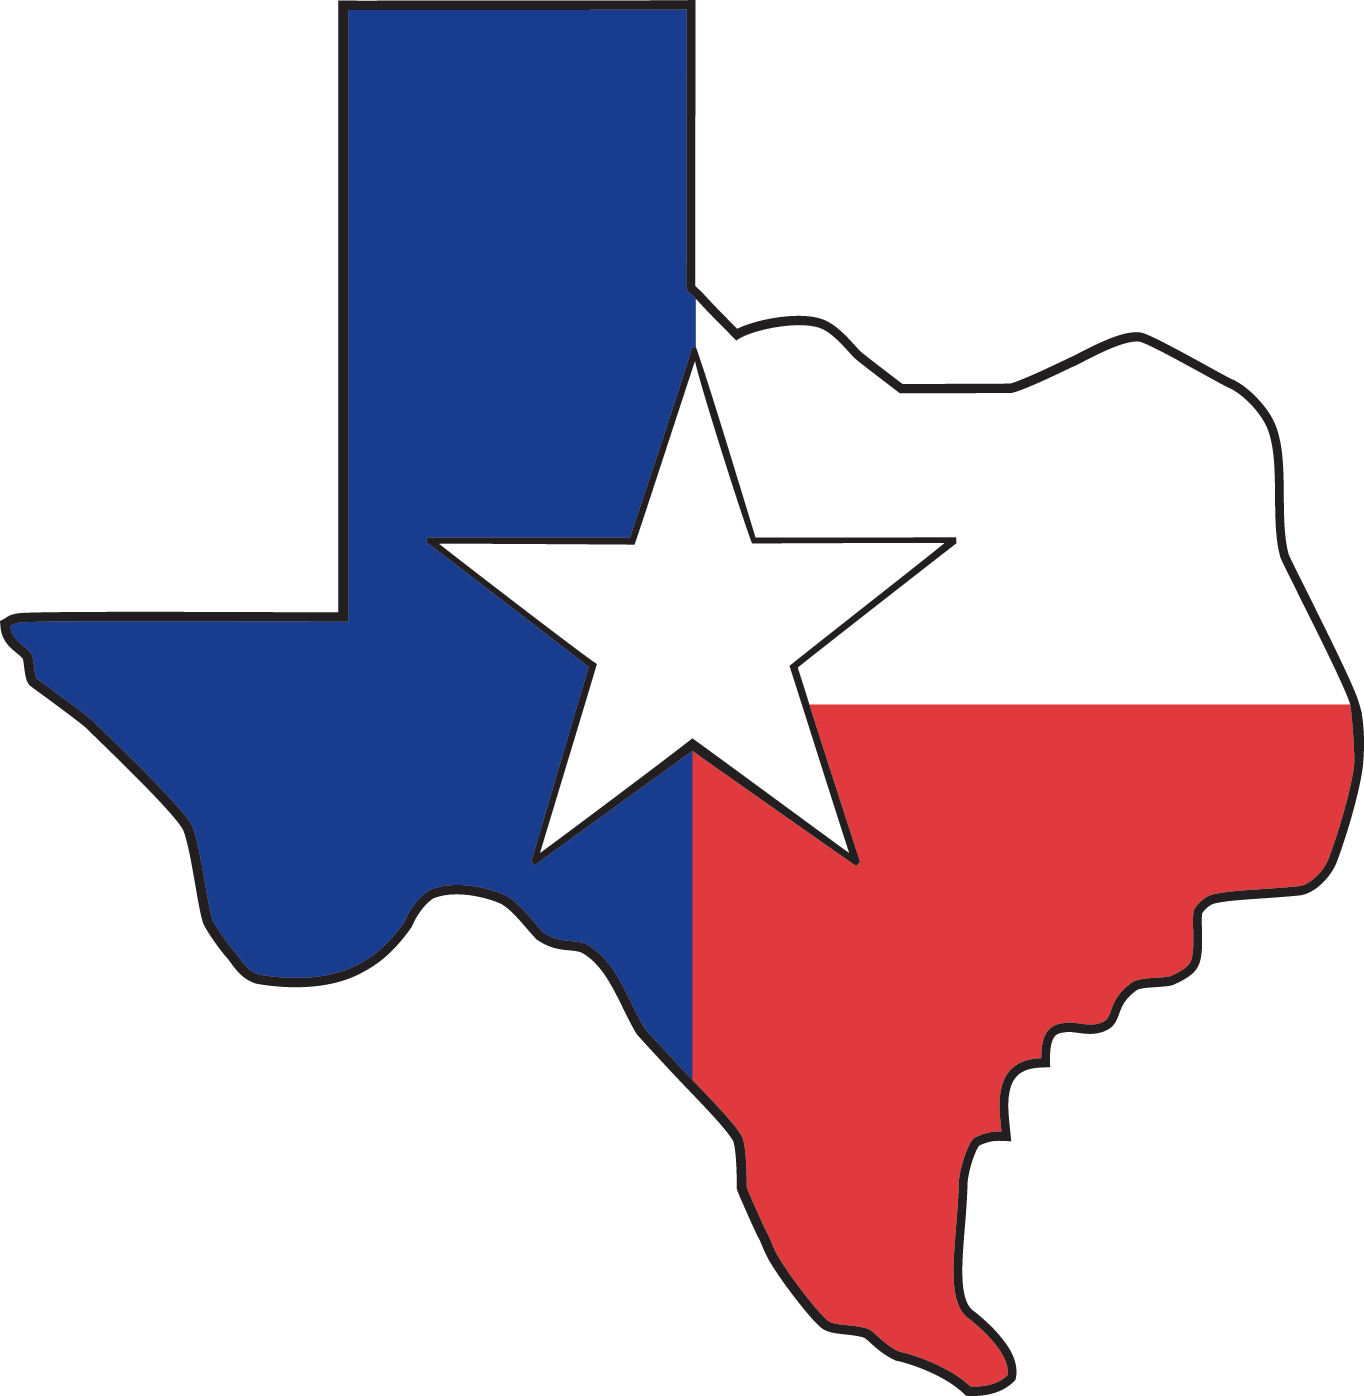 Lone star clipart black and white clip free download Recorded Books - Logos clip free download